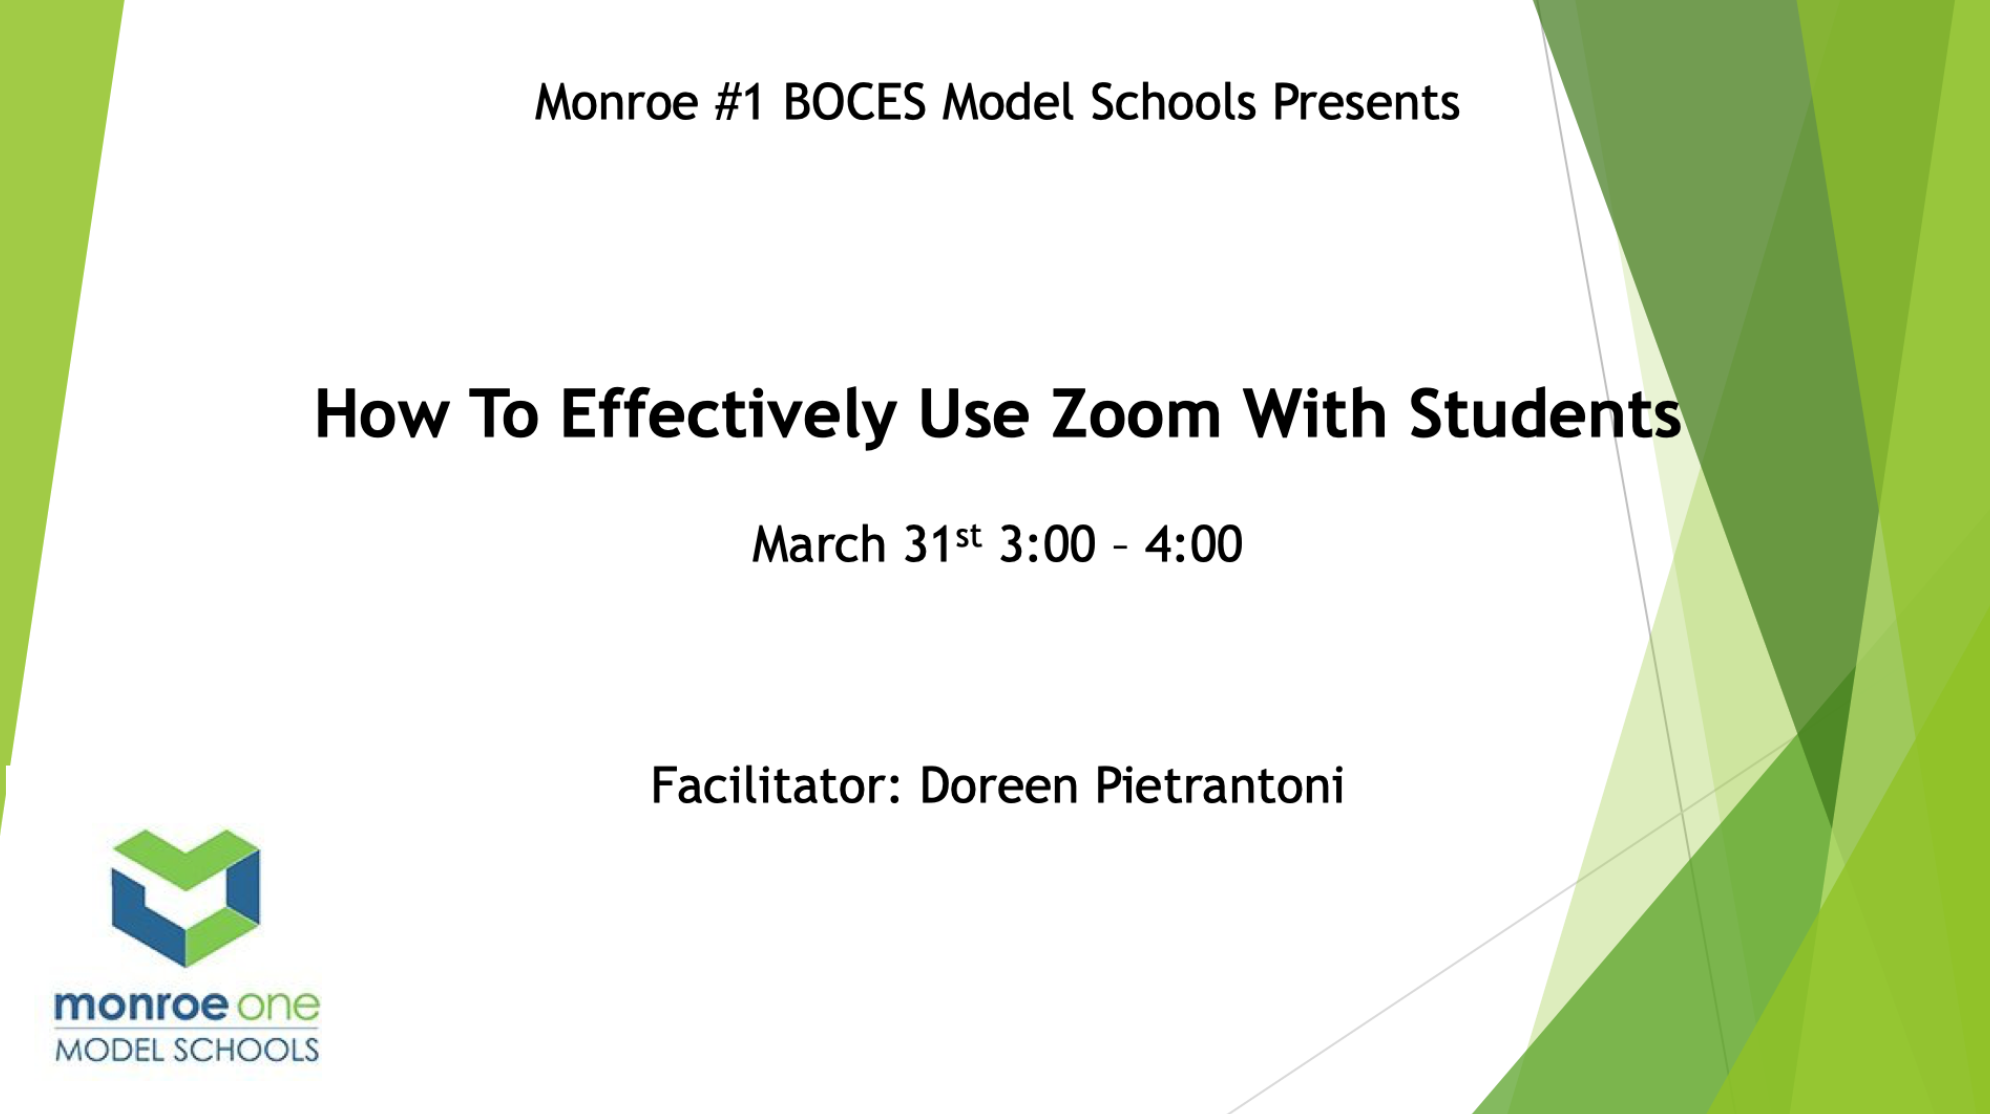 How to Effectively Use Zoom With Students